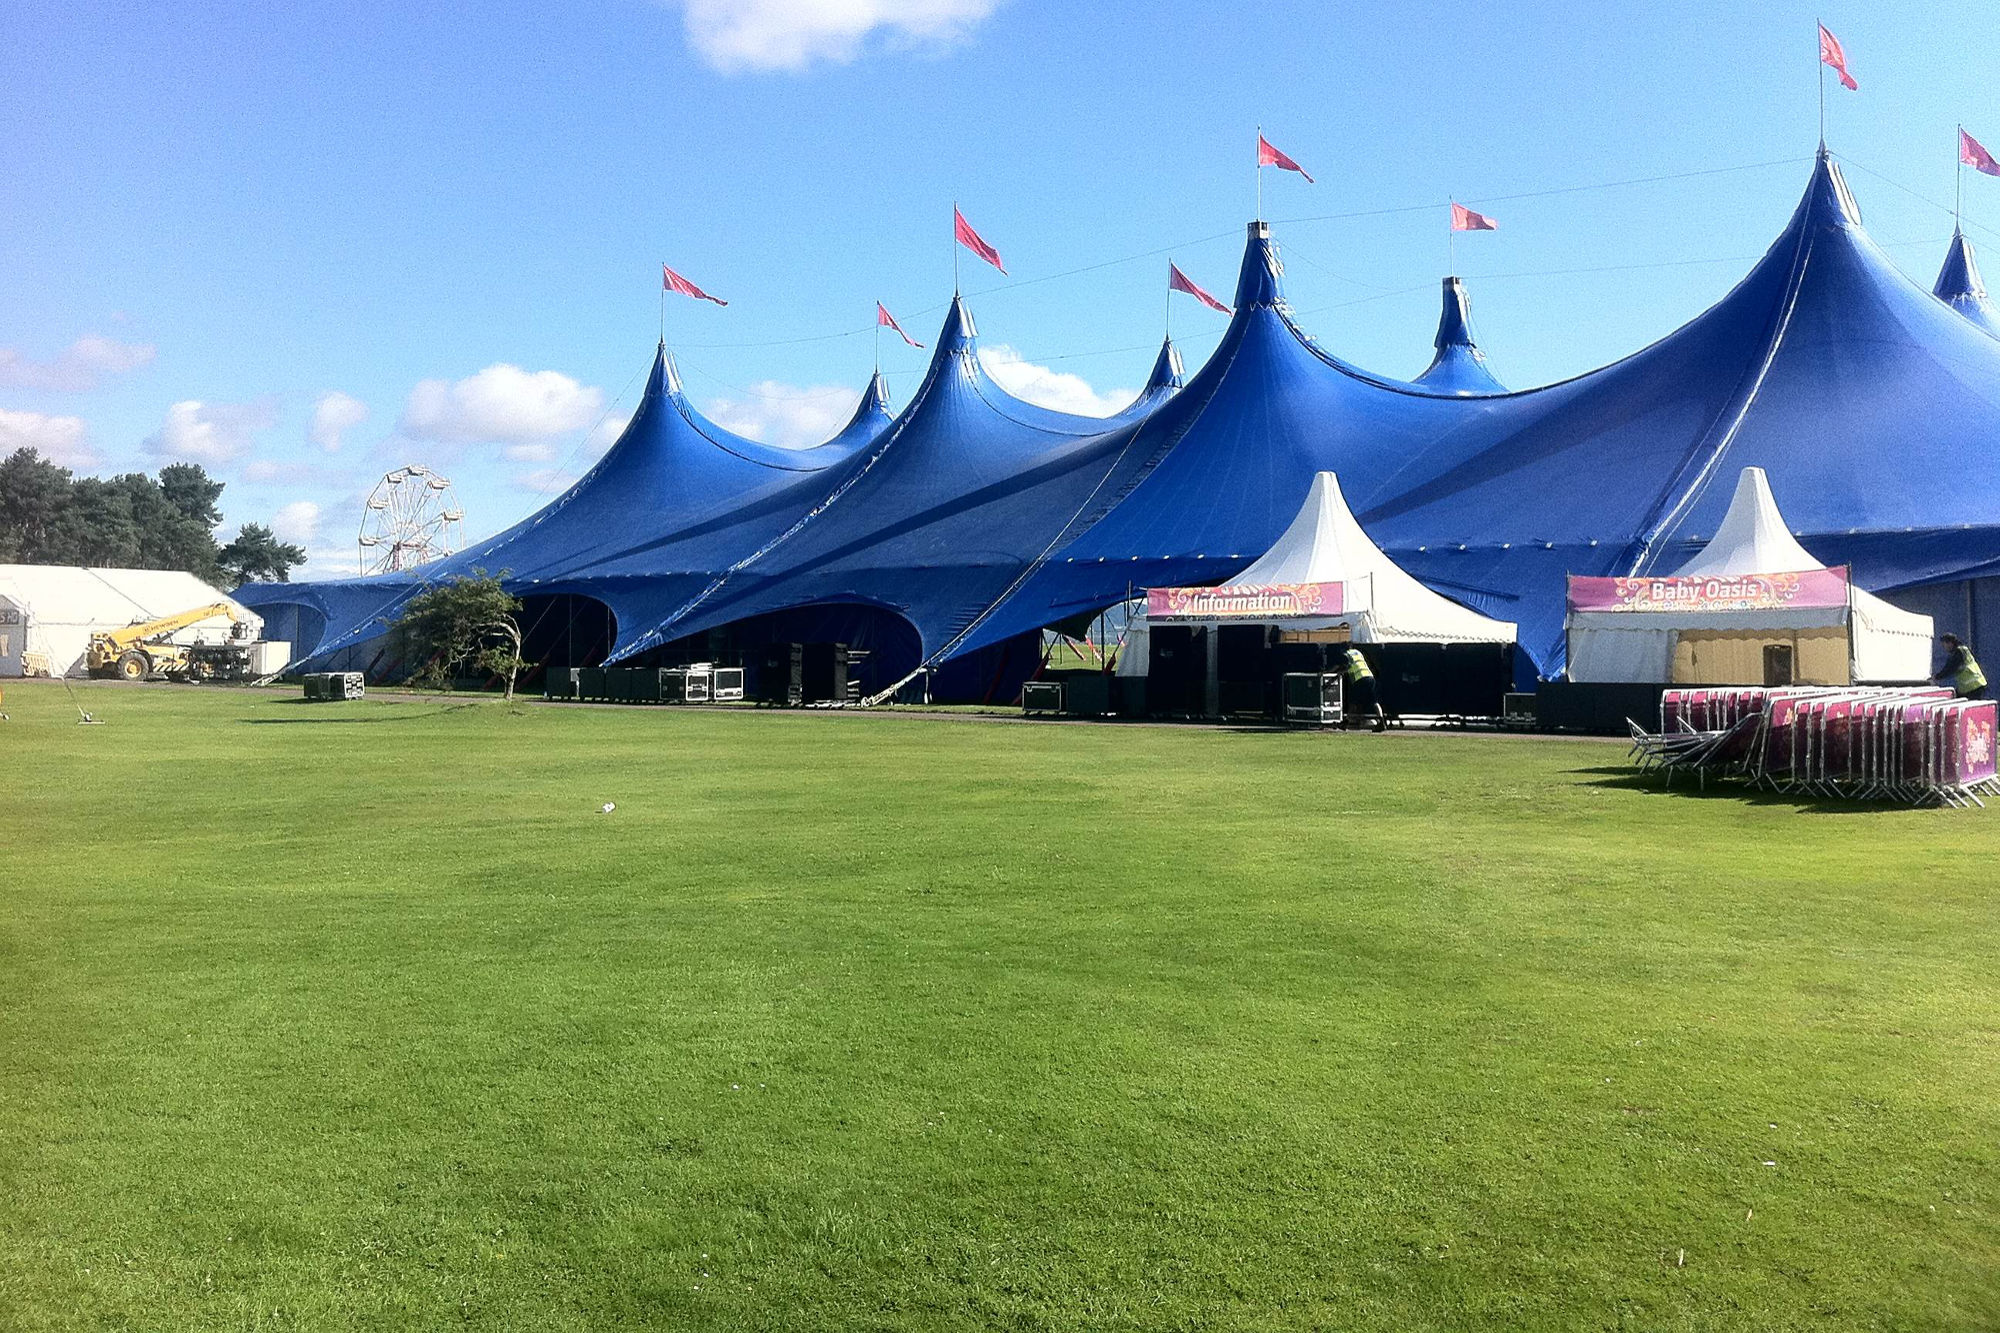 ... Concert Hire - Festival Site I ... & Festival Marquee Hire Gallery - ARC MARQUEES - Marquee hire for ...